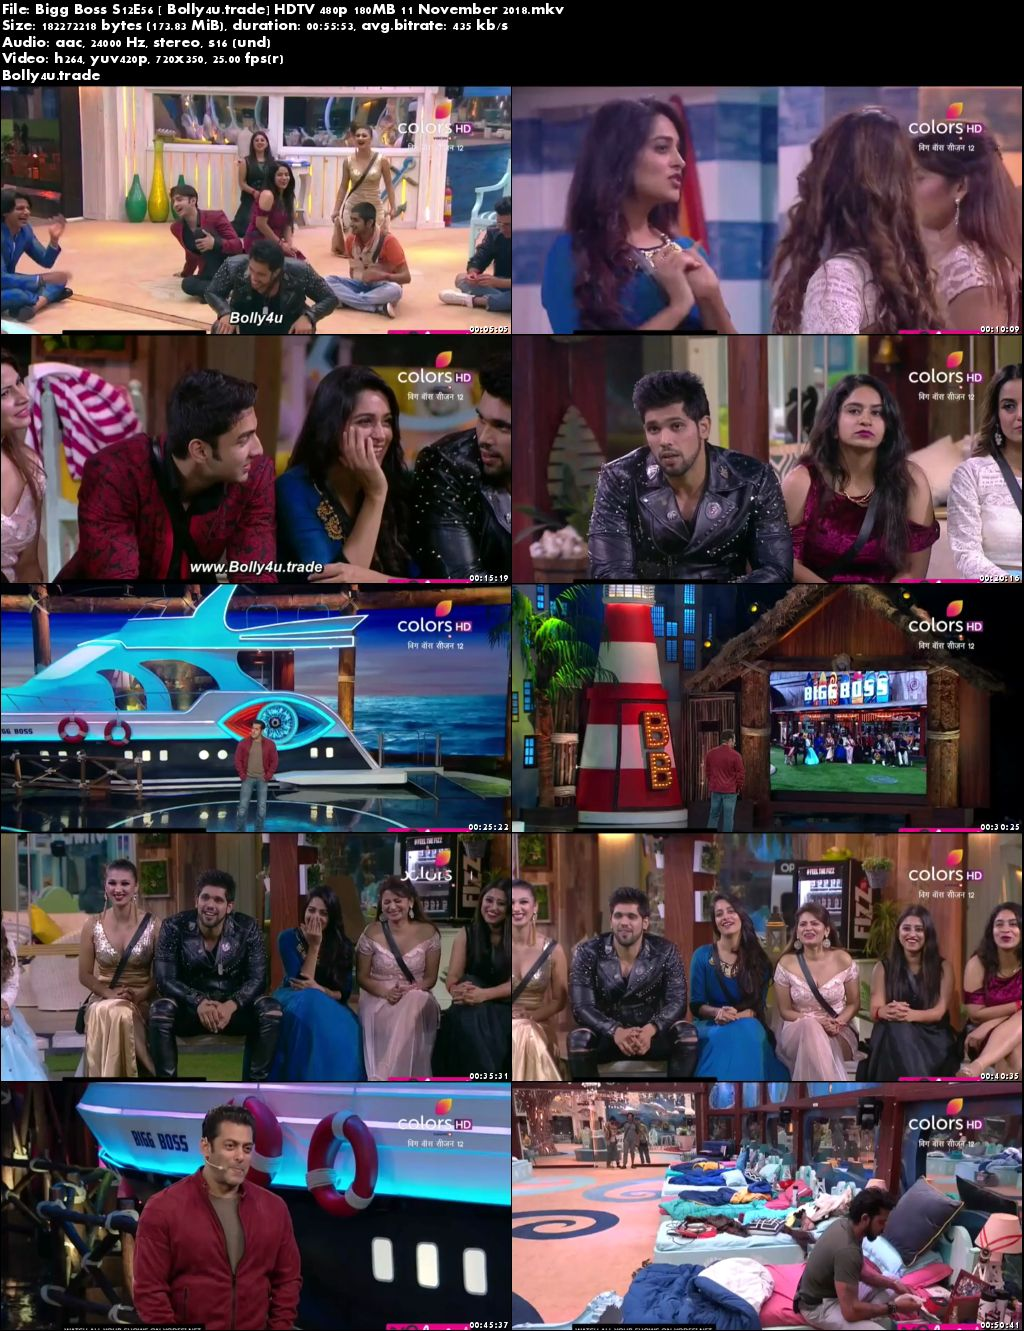 Bigg Boss S12E56 HDTV 480p 180MB 11 November 2018 Download